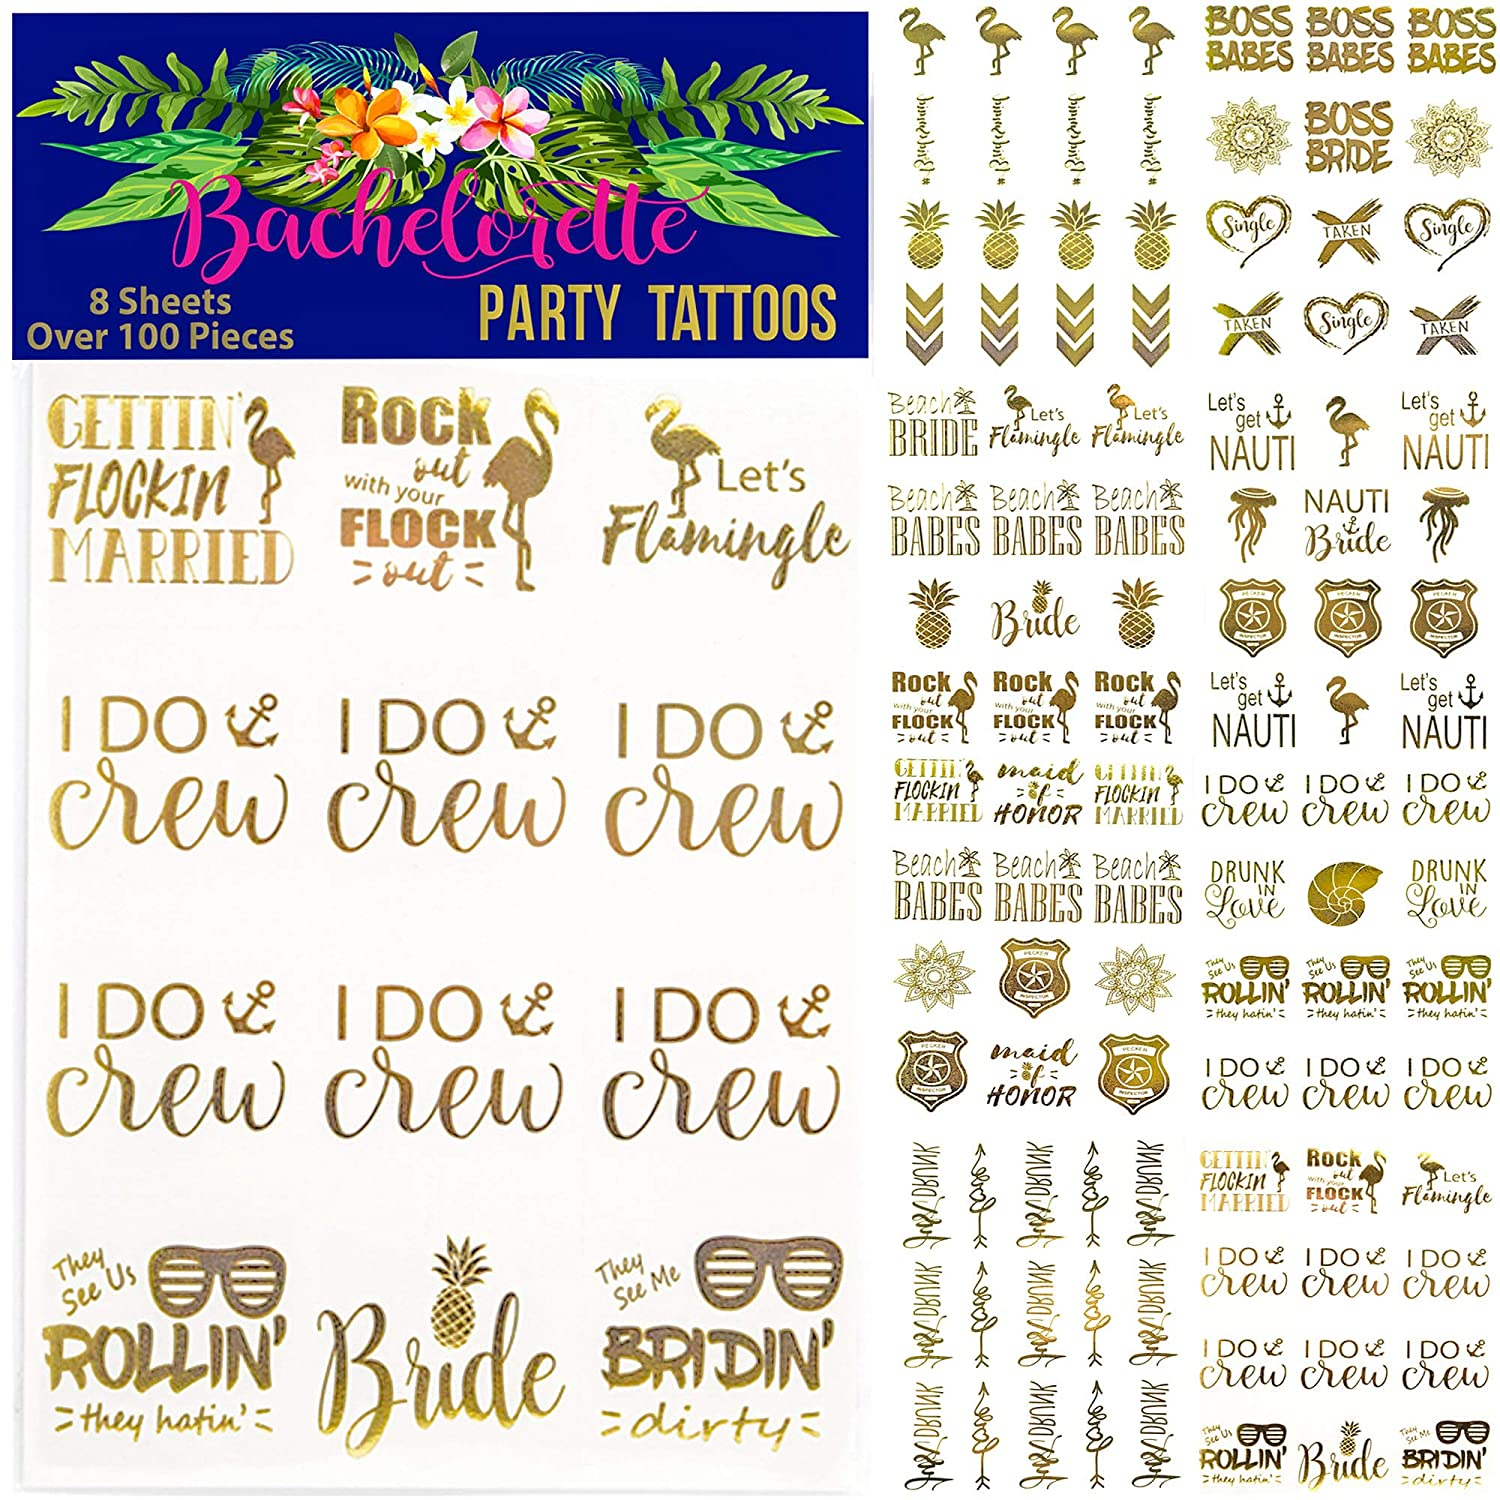 Happy Magnolia 100+ pc Bachelorette Party Tattoos/Bride Tattoo (8 Sheets) Perforated Temporary Metallic Gold Tattoos Quick Bridal Shower Party Favor Decorations: Bridesmaid, Maid of Honor, Funny